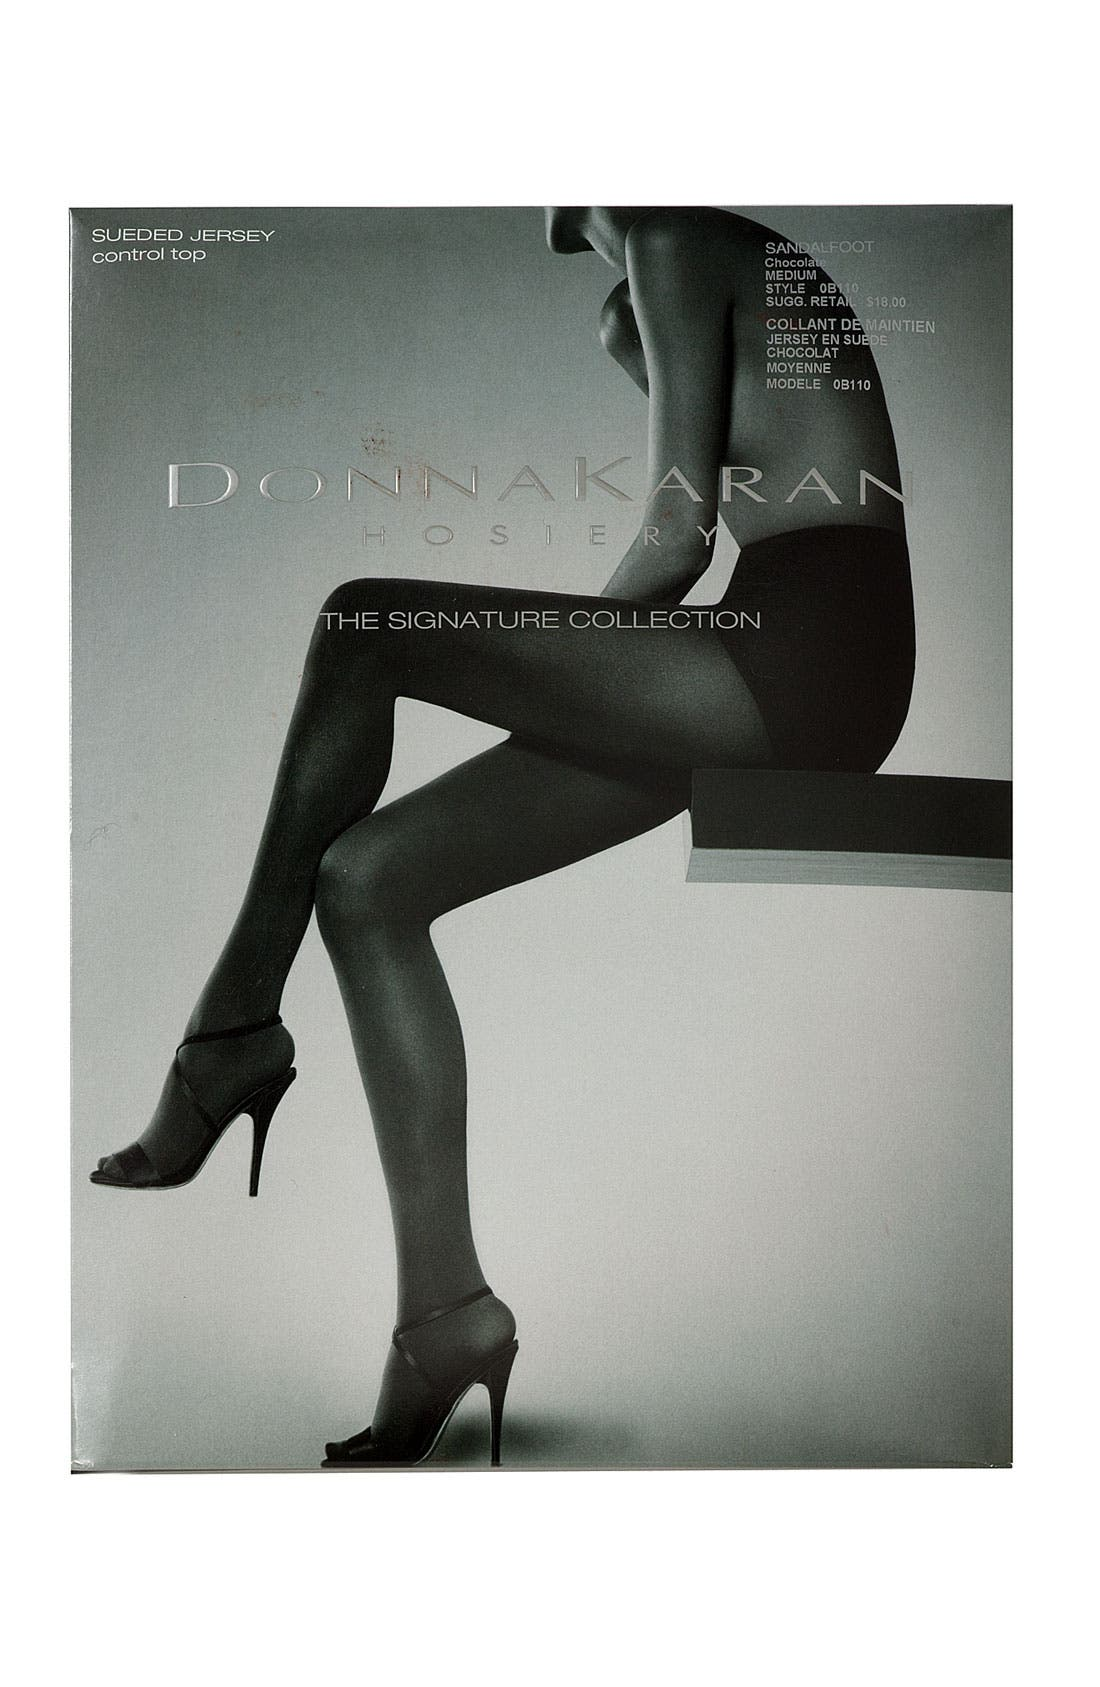 Alternate Image 2  - Donna Karan Sueded Jersey Control Top Tights